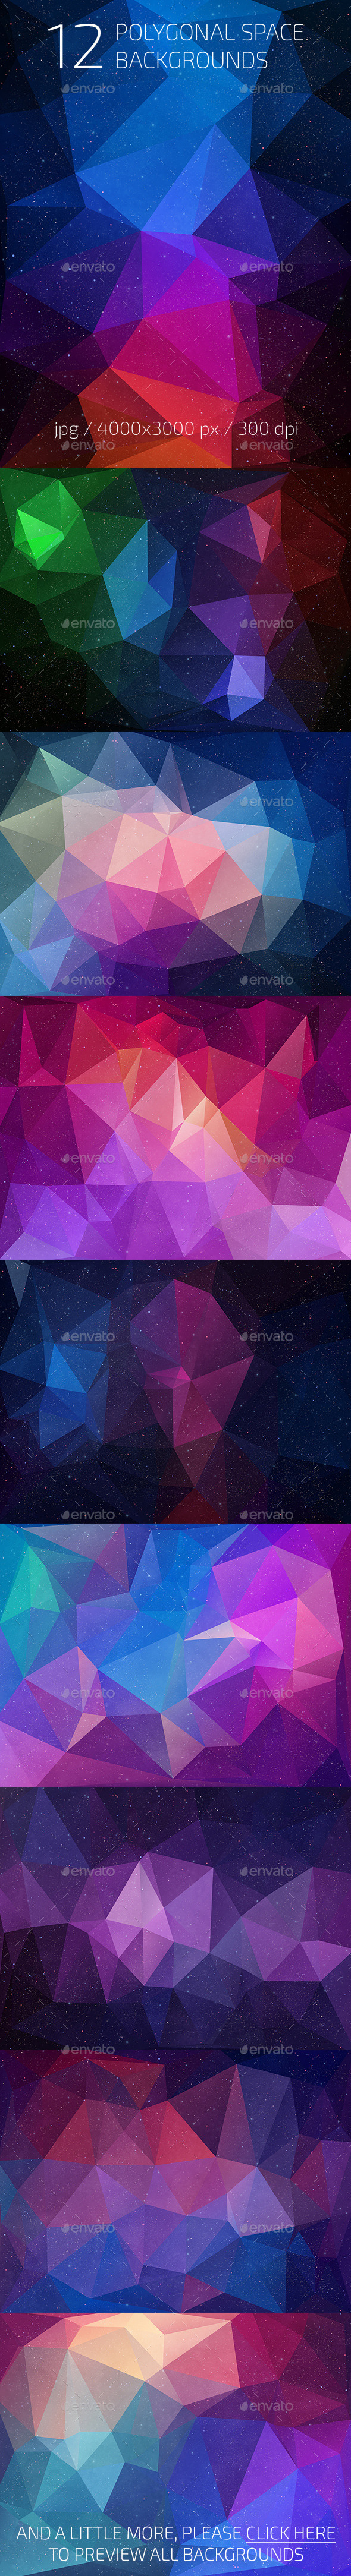 GraphicRiver 12 Polygonal Space Backgrounds 10456441